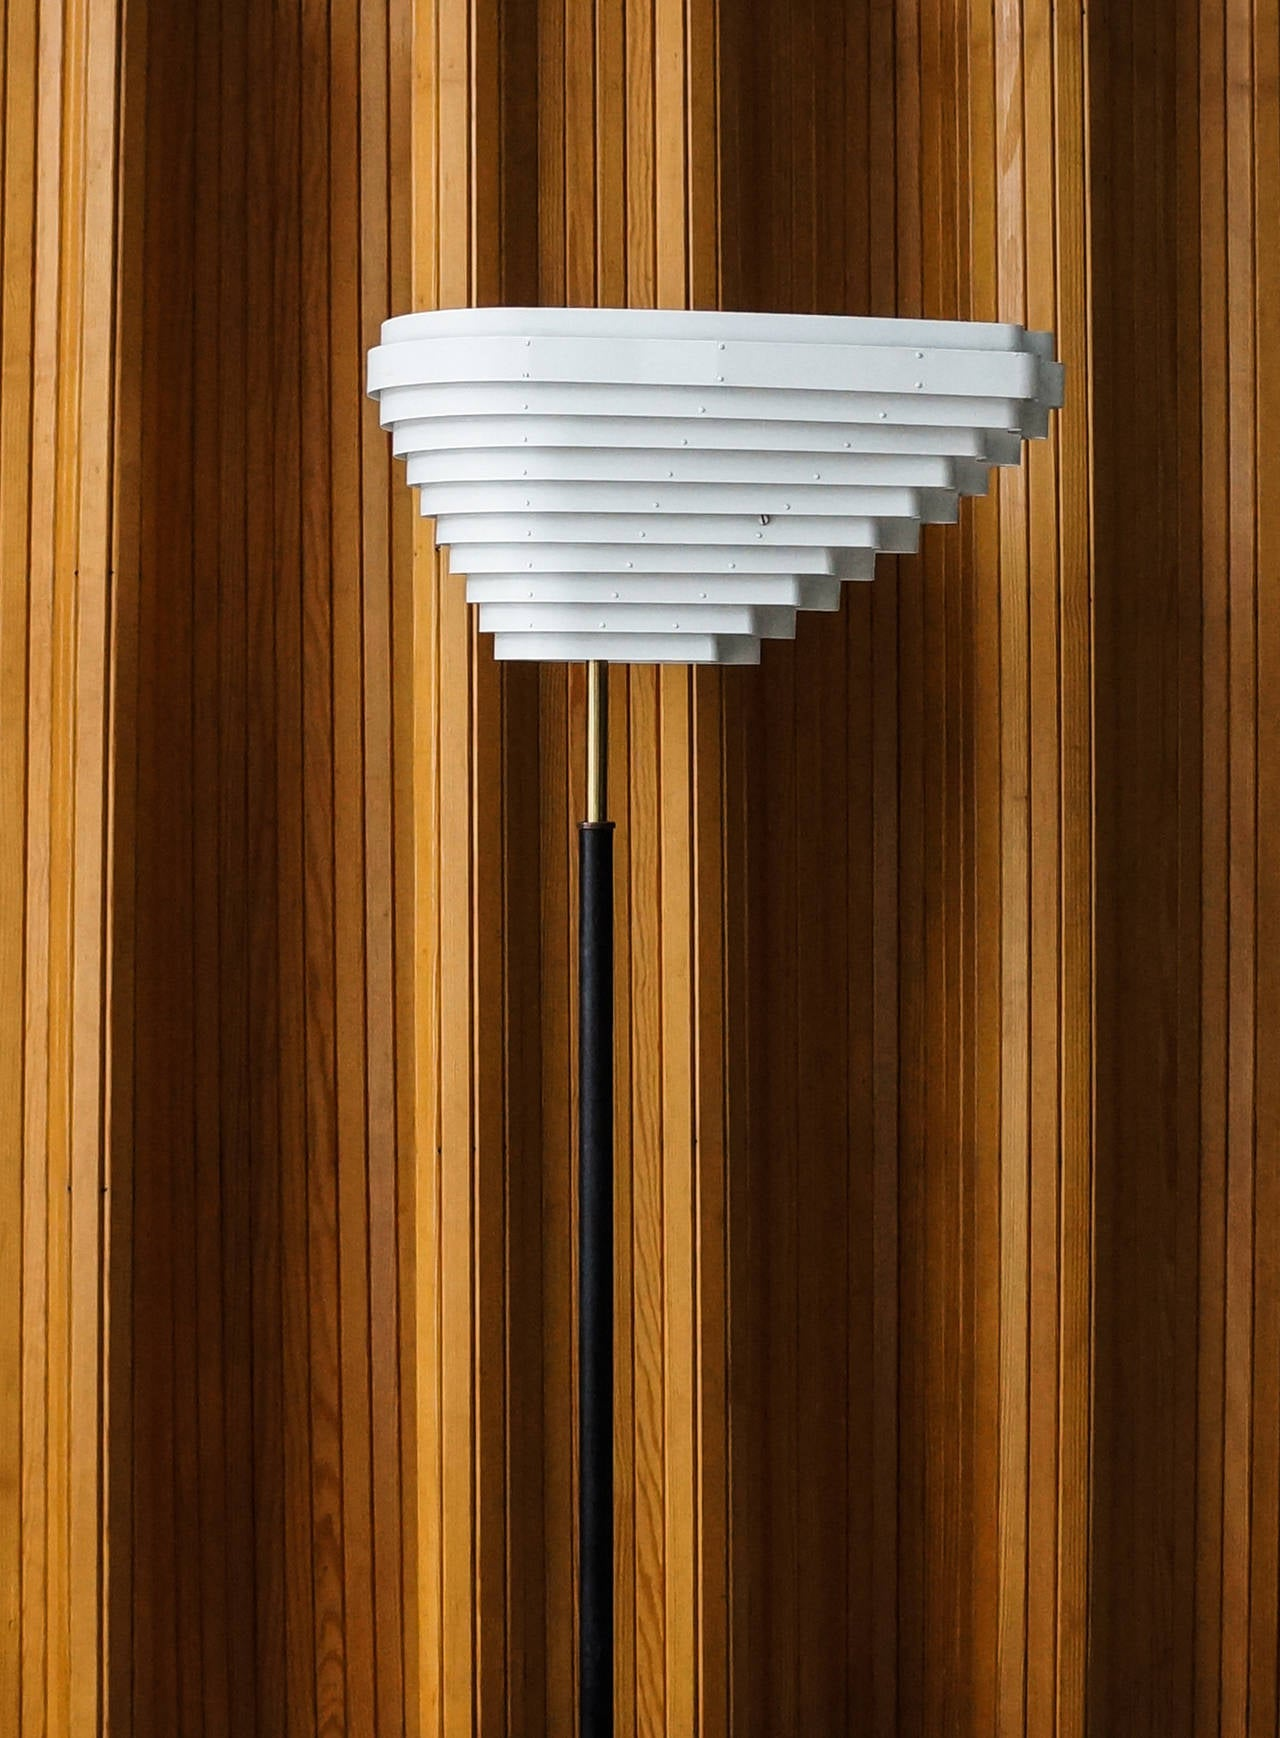 Alvar Aalto Floor lamp A805.  Valaistustyö Ky. Finland, 1954  White painted metal, brass, tubular brass and black leather-wrapped metal. Stem impressed with Valaistustyö A 805. Measures: Height, circa 172 cm, width, circa 50 cm.  A805, also known